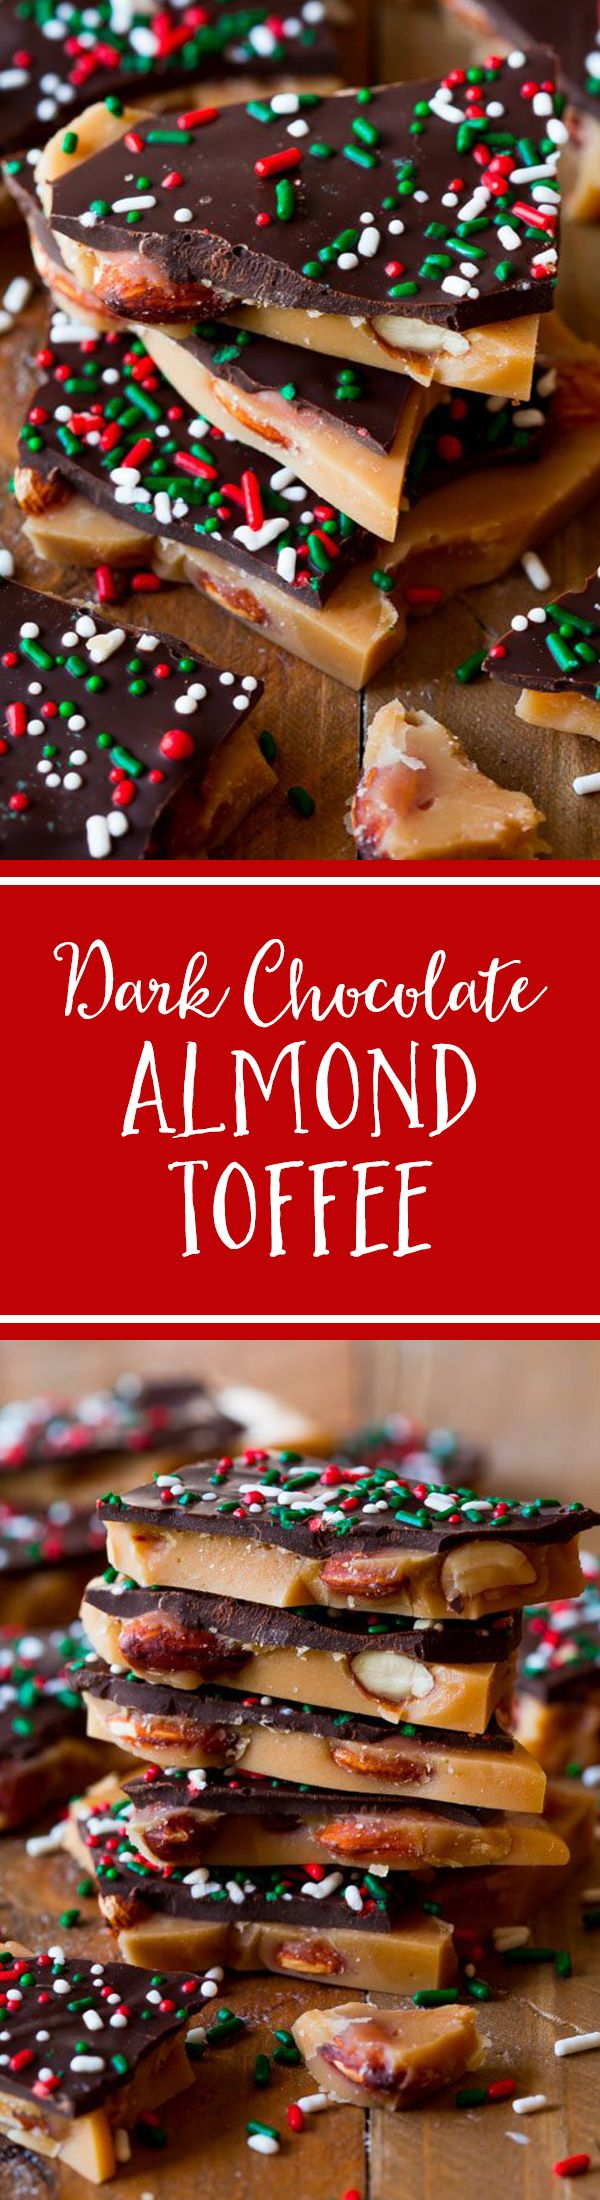 Salted Dark Chocolate Almond Toffee Recipe on sallysbakingaddiction.com-- this stuff is addictive!